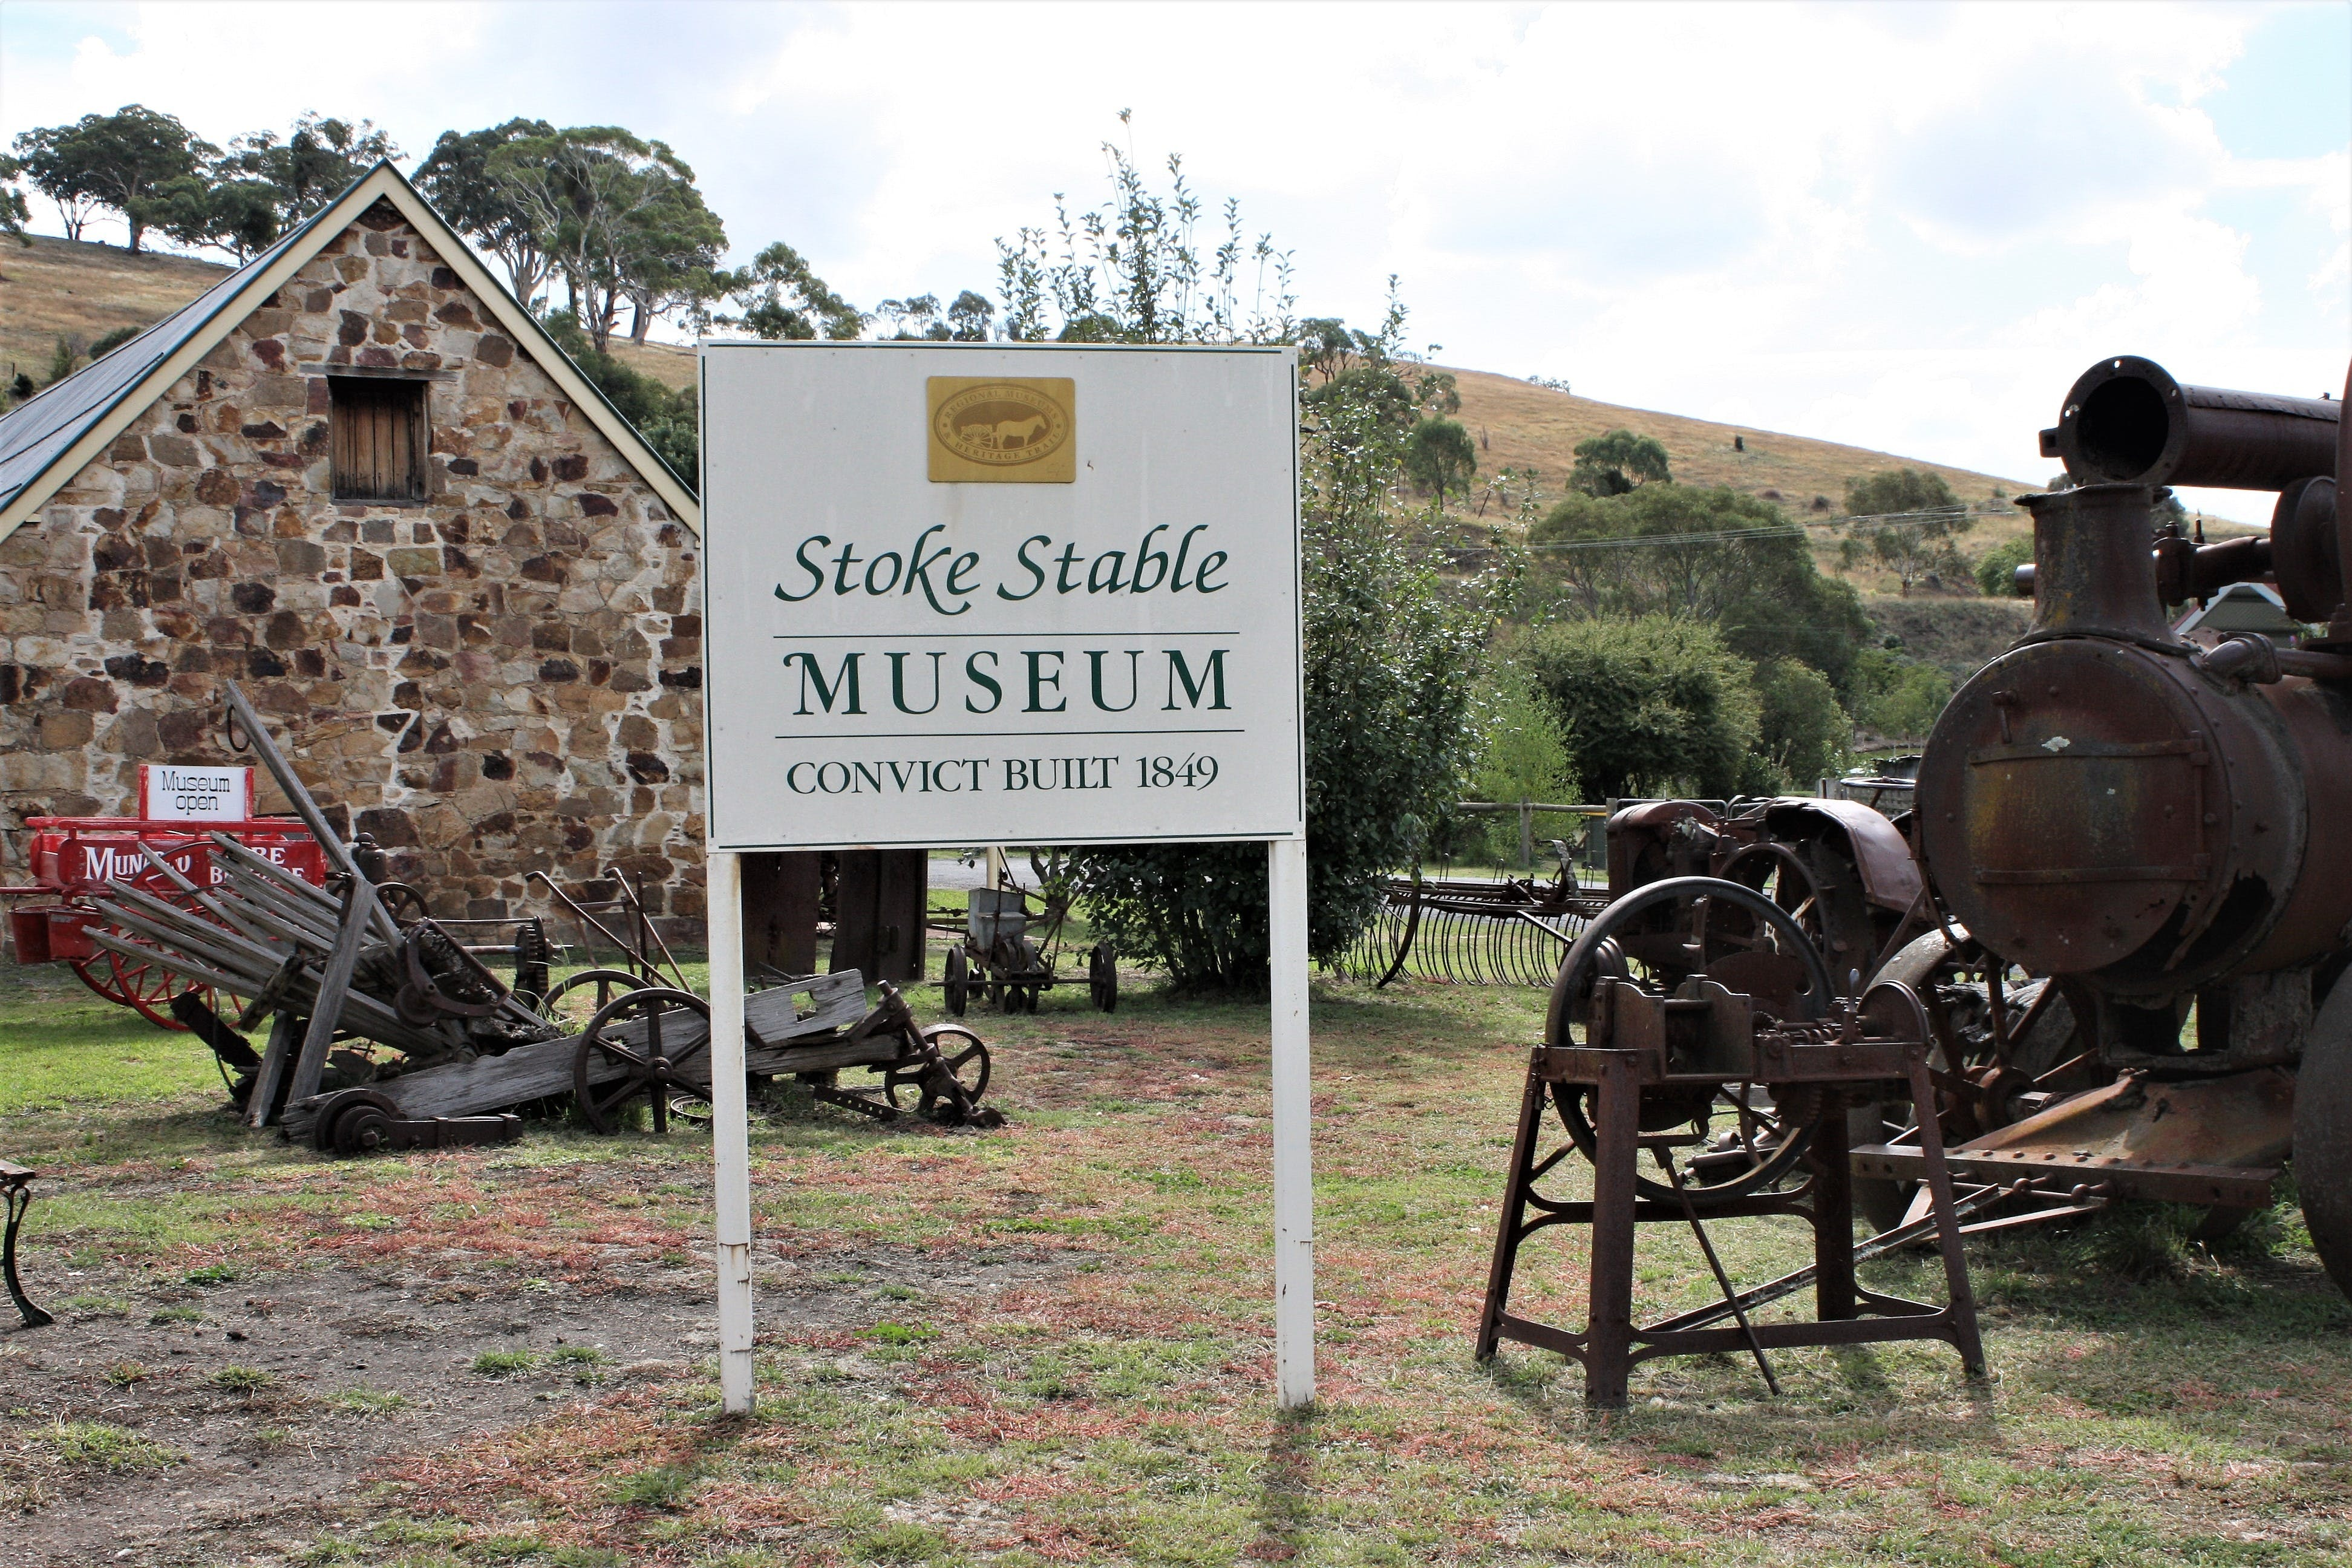 Stoke Stable Museum